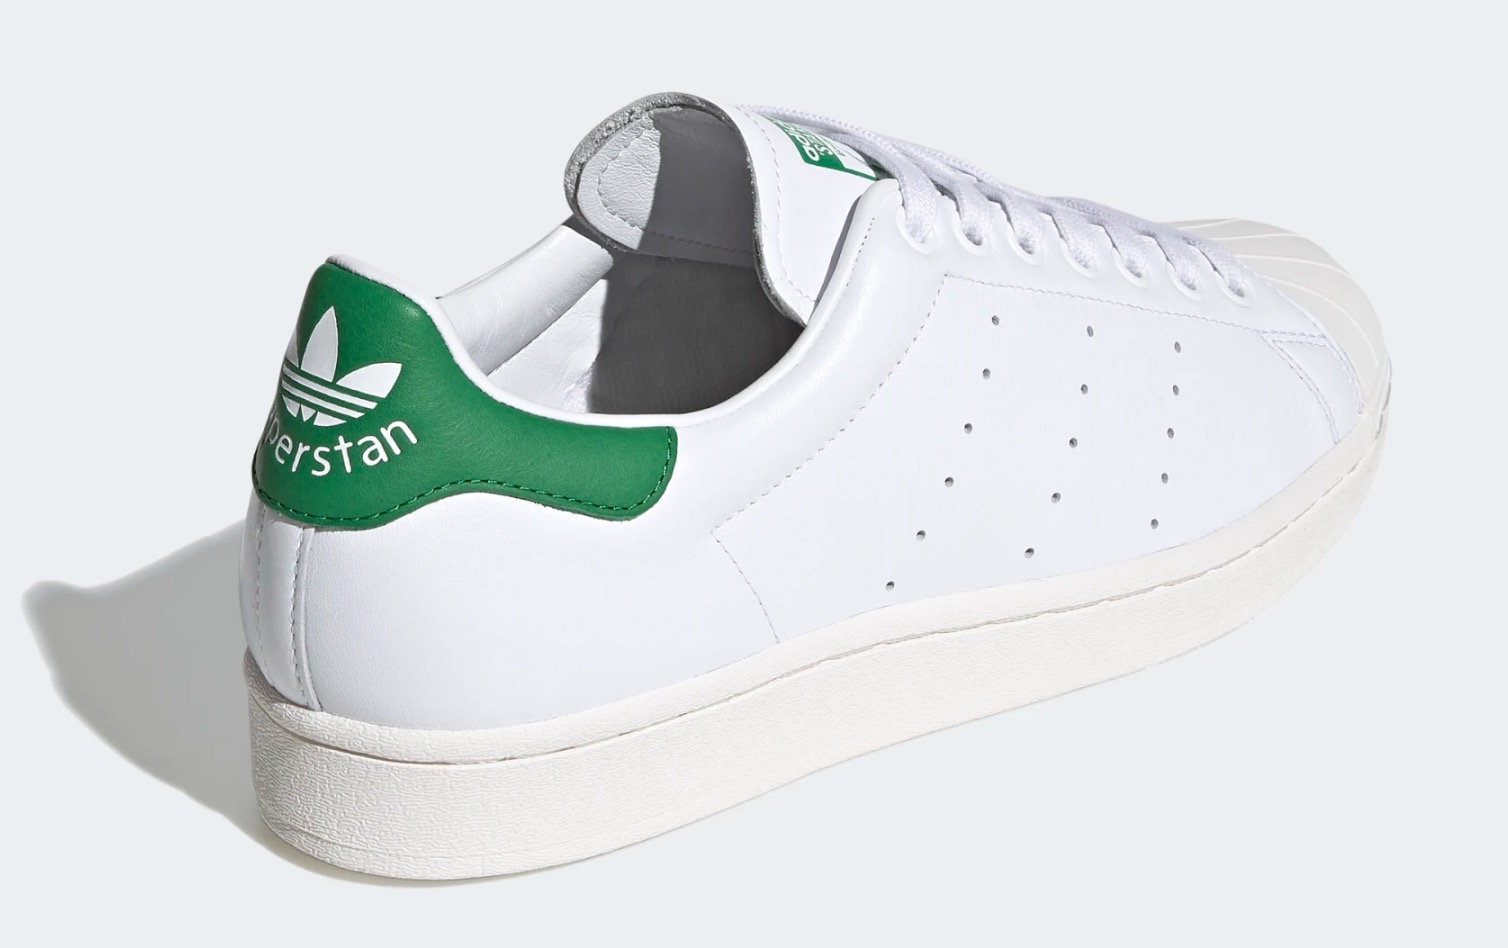 Introducing The Superstan, adidas' New, Contemporary Hyrbid Silhouette heel